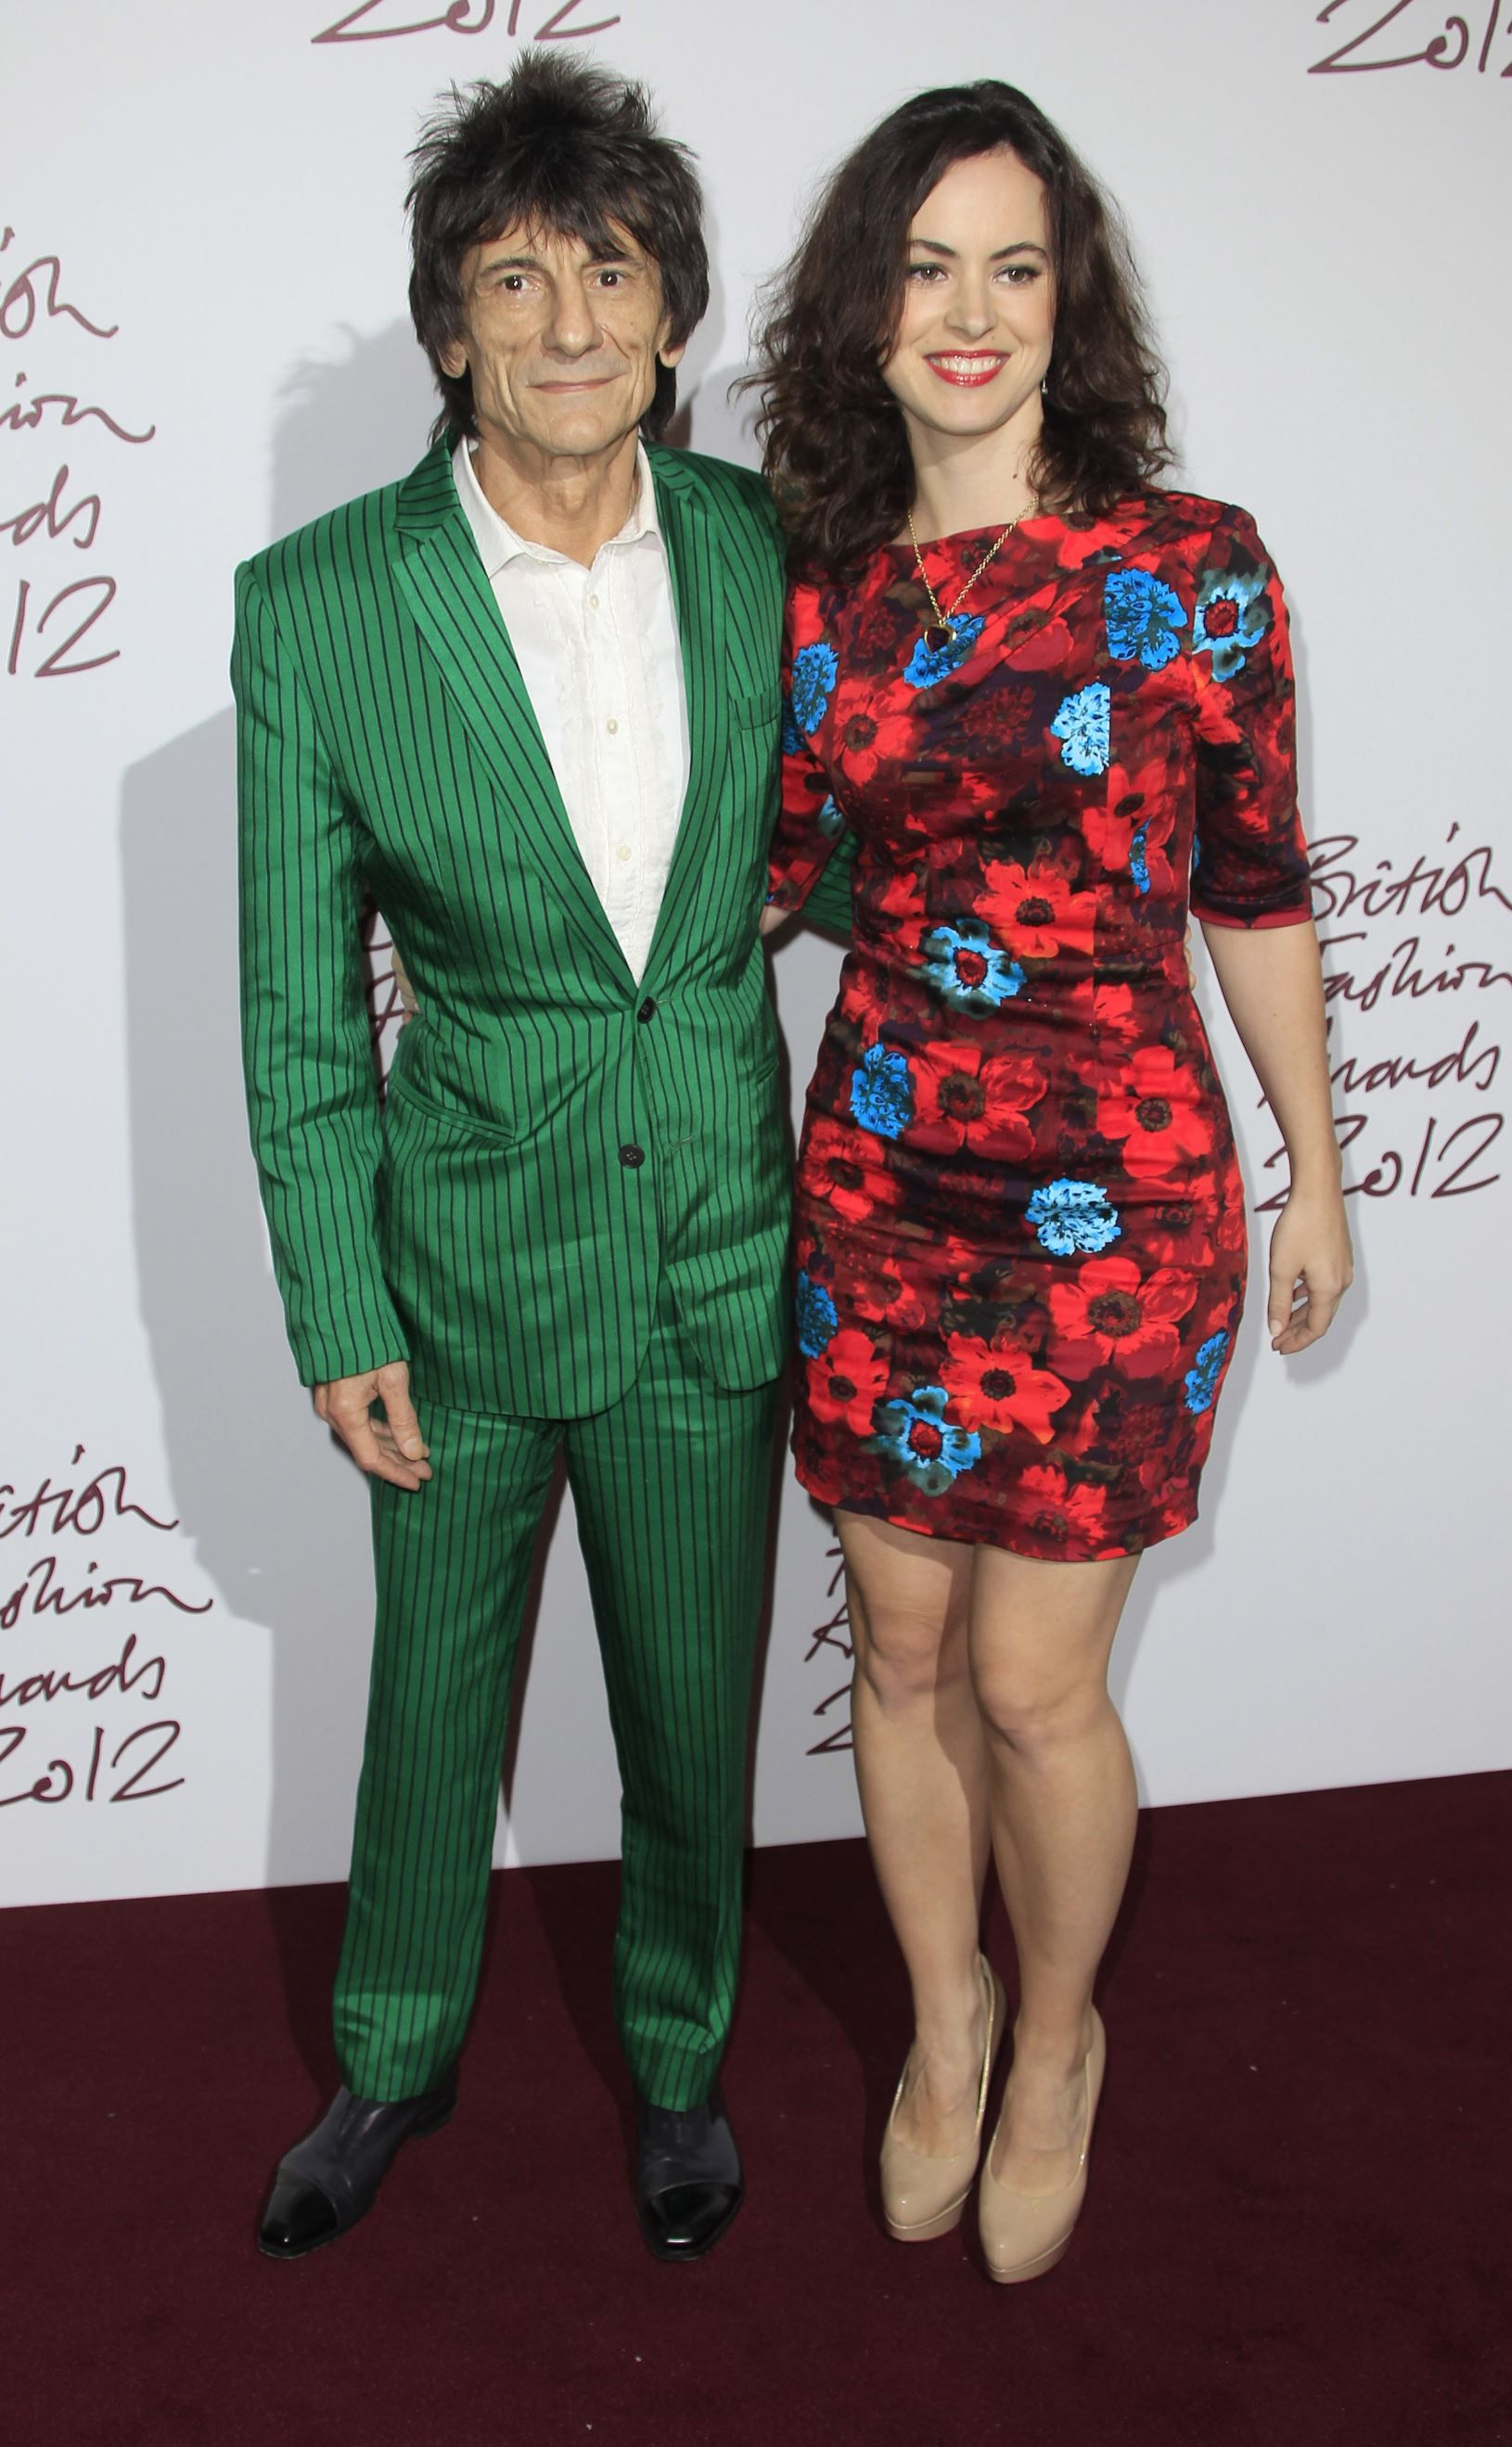 Rolling Stones guitarist Ronnie Wood, 68, 'thrilled' to be